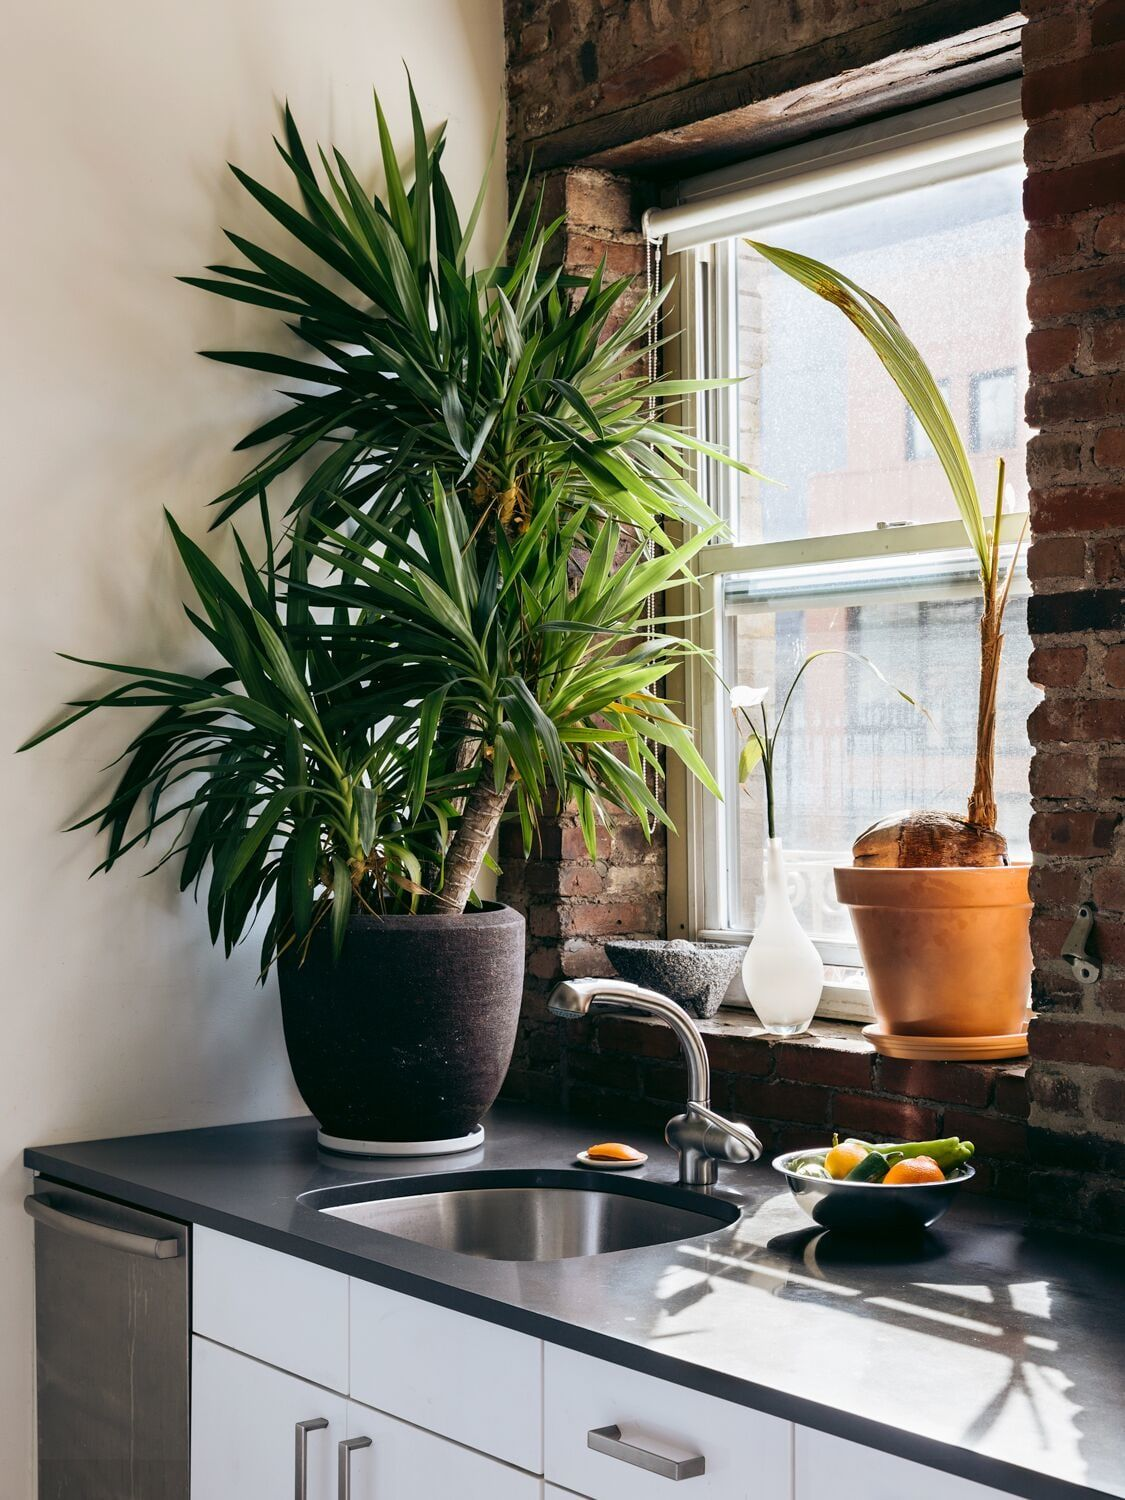 House Plants To Keep In The Kitchen